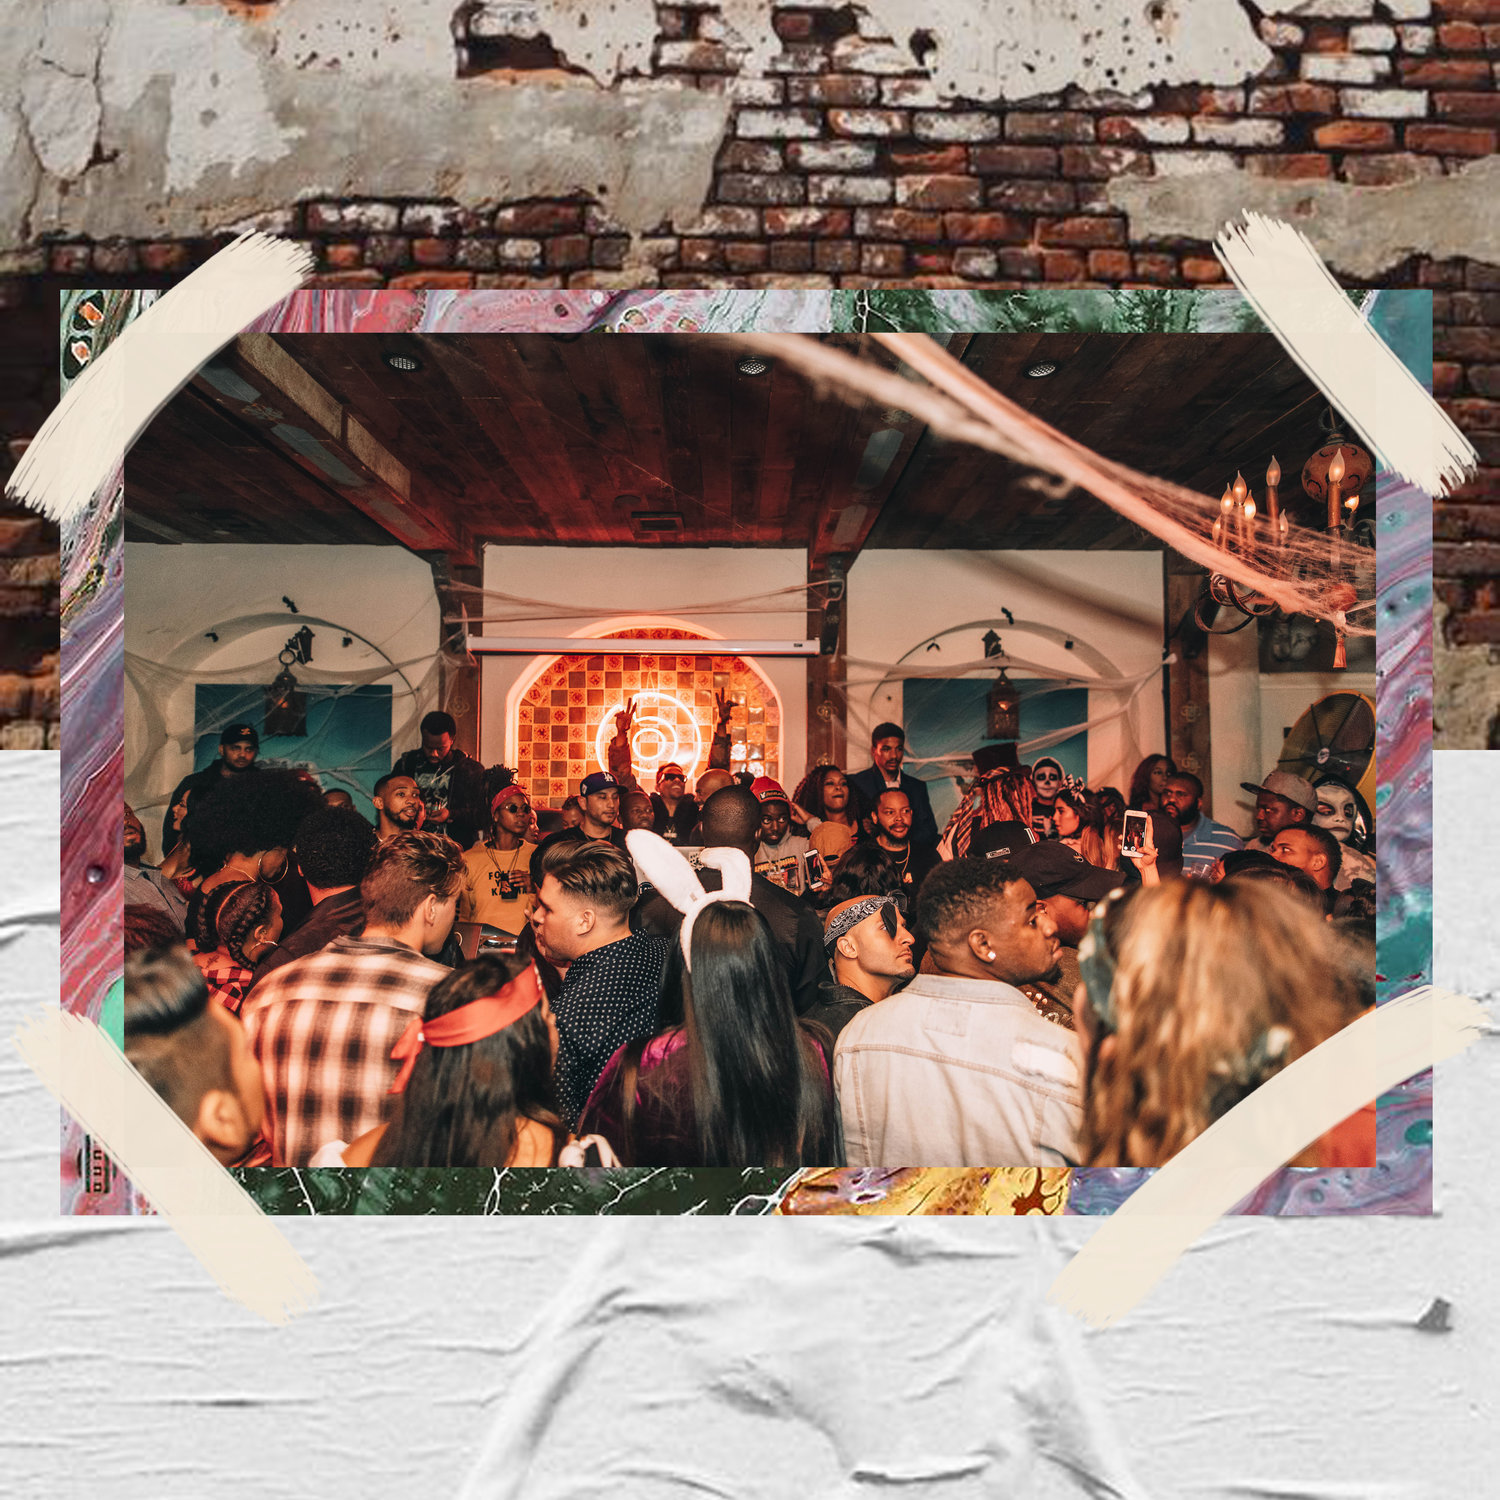 CROWD LISTENS TO TY DOLLA $IGN'S NEW ALBUM BEACH HOUSE 3 IN SANTA MONICA / PHOTO CREDIT: KAITO / DESIGN CREDIT: VANESSA ACOSTA